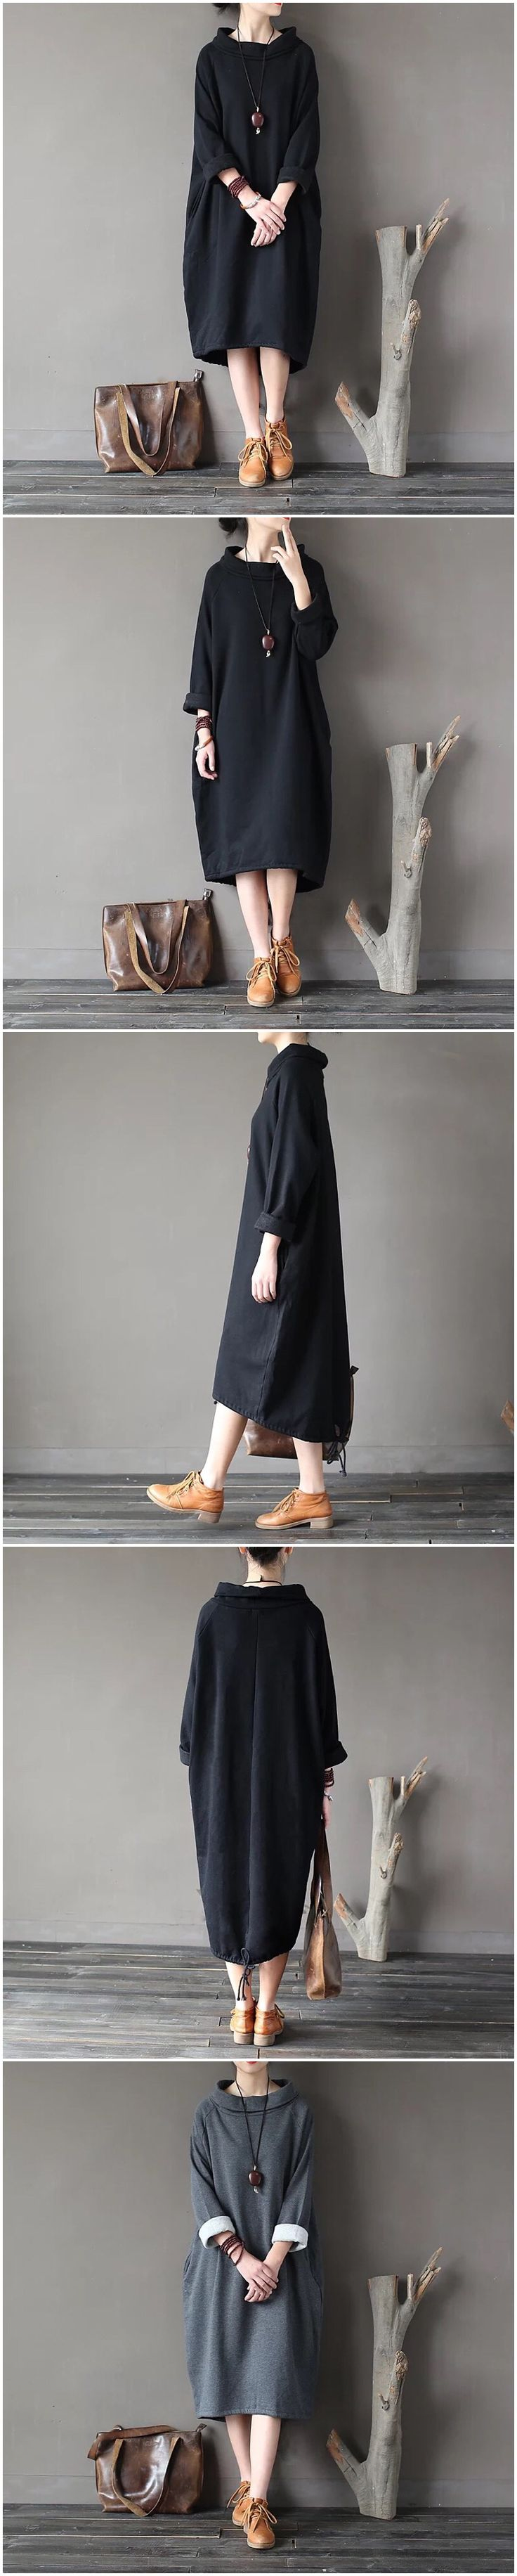 Black loose winters warm fleece dresses